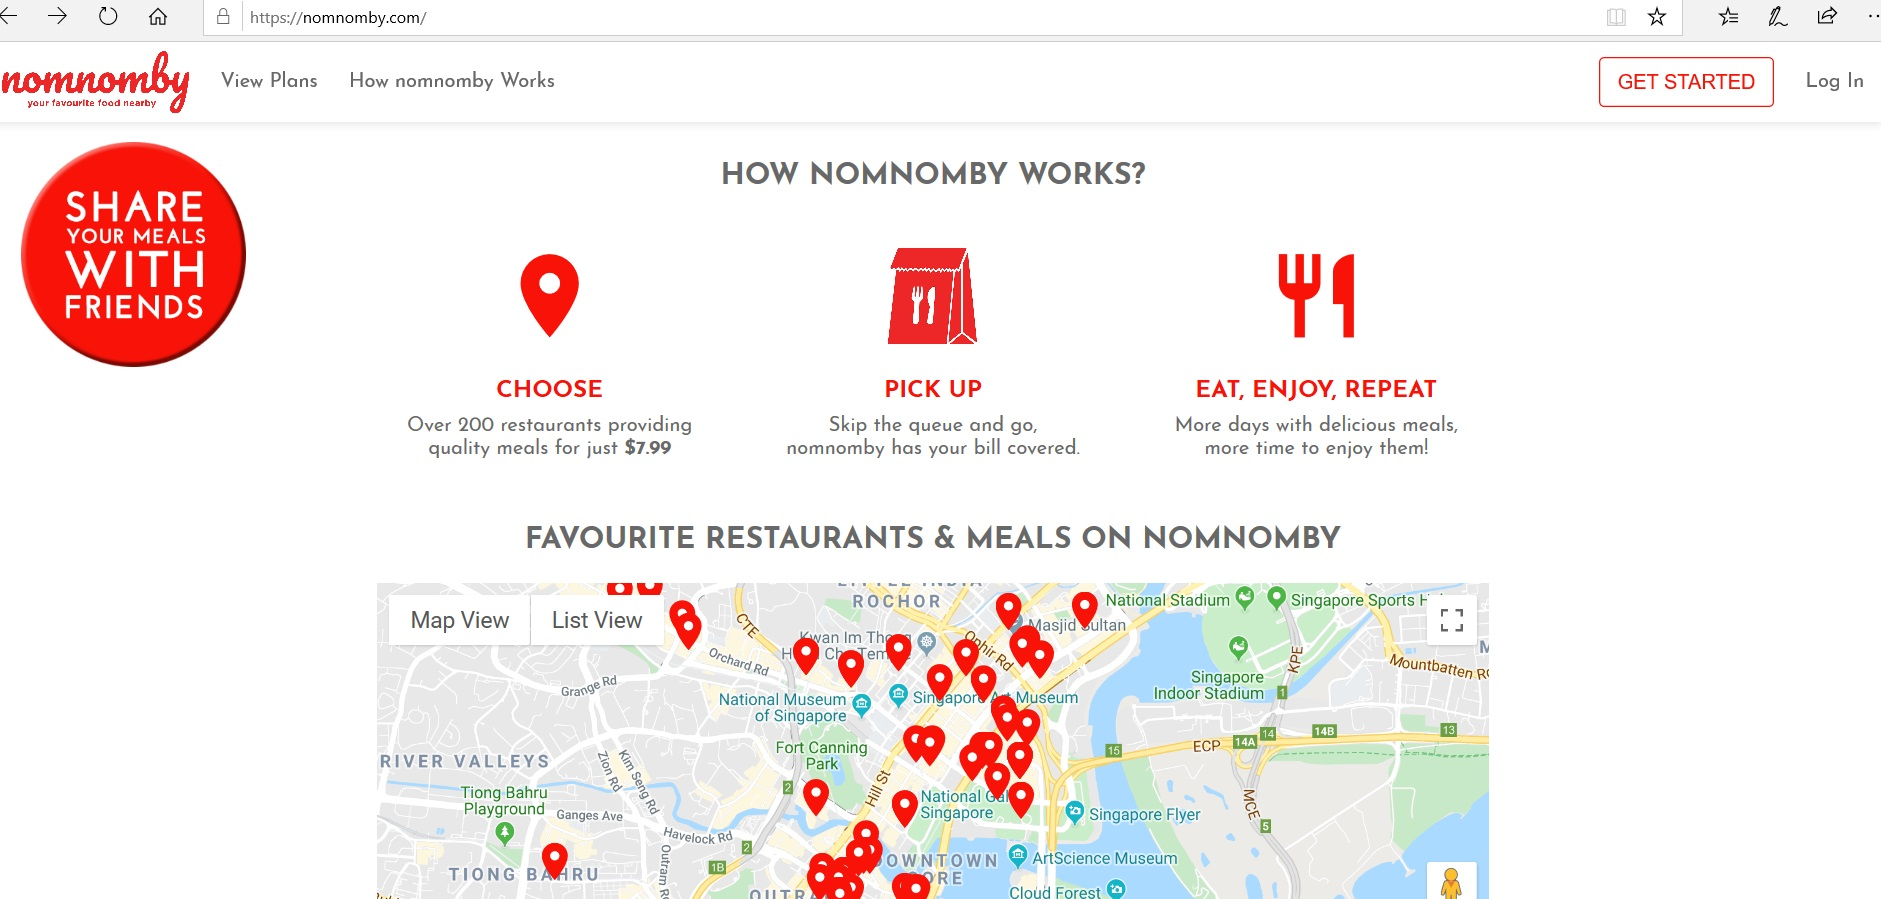 Map indicating restaurants with Nomnomby.